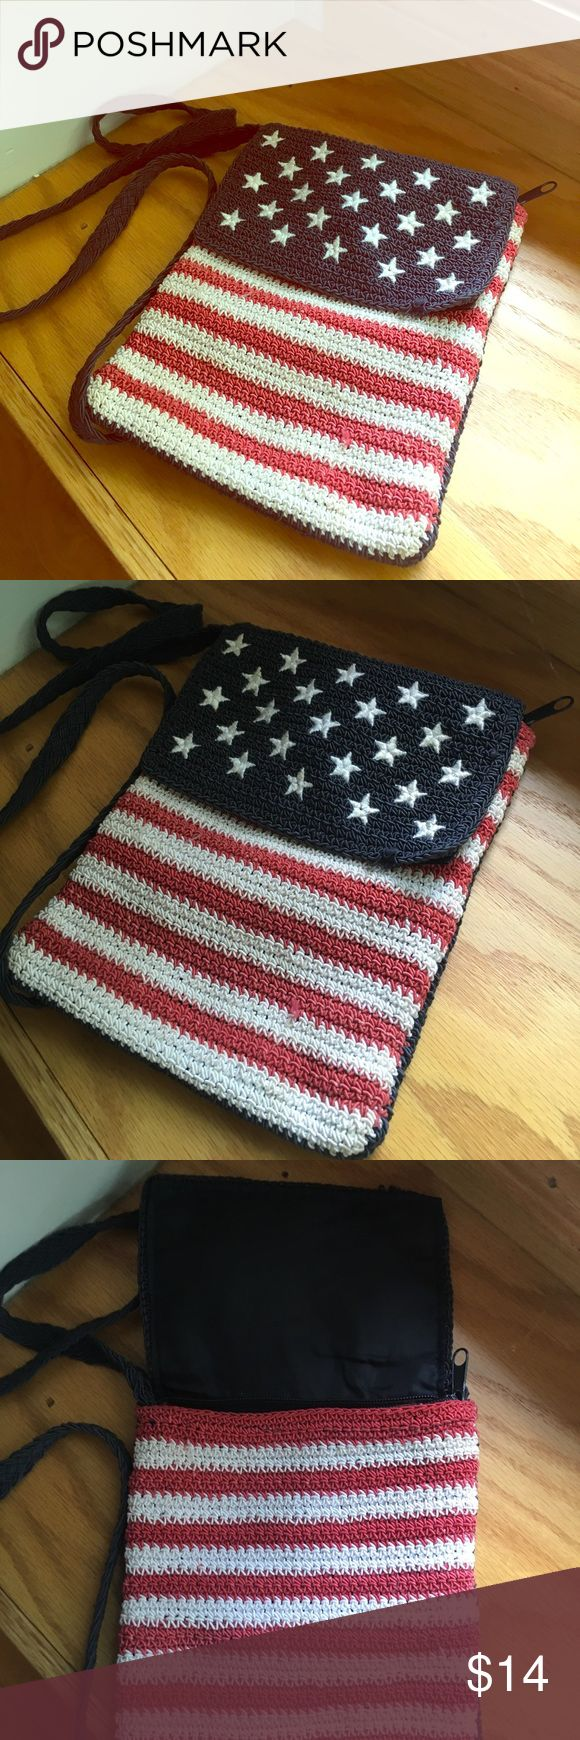 Small American Flag Shoulder Purse Small American Flag Shoulder Purse. Zippered with Pocket inside. Good condition. Comment for more details or photos :) Bags Crossbody Bags